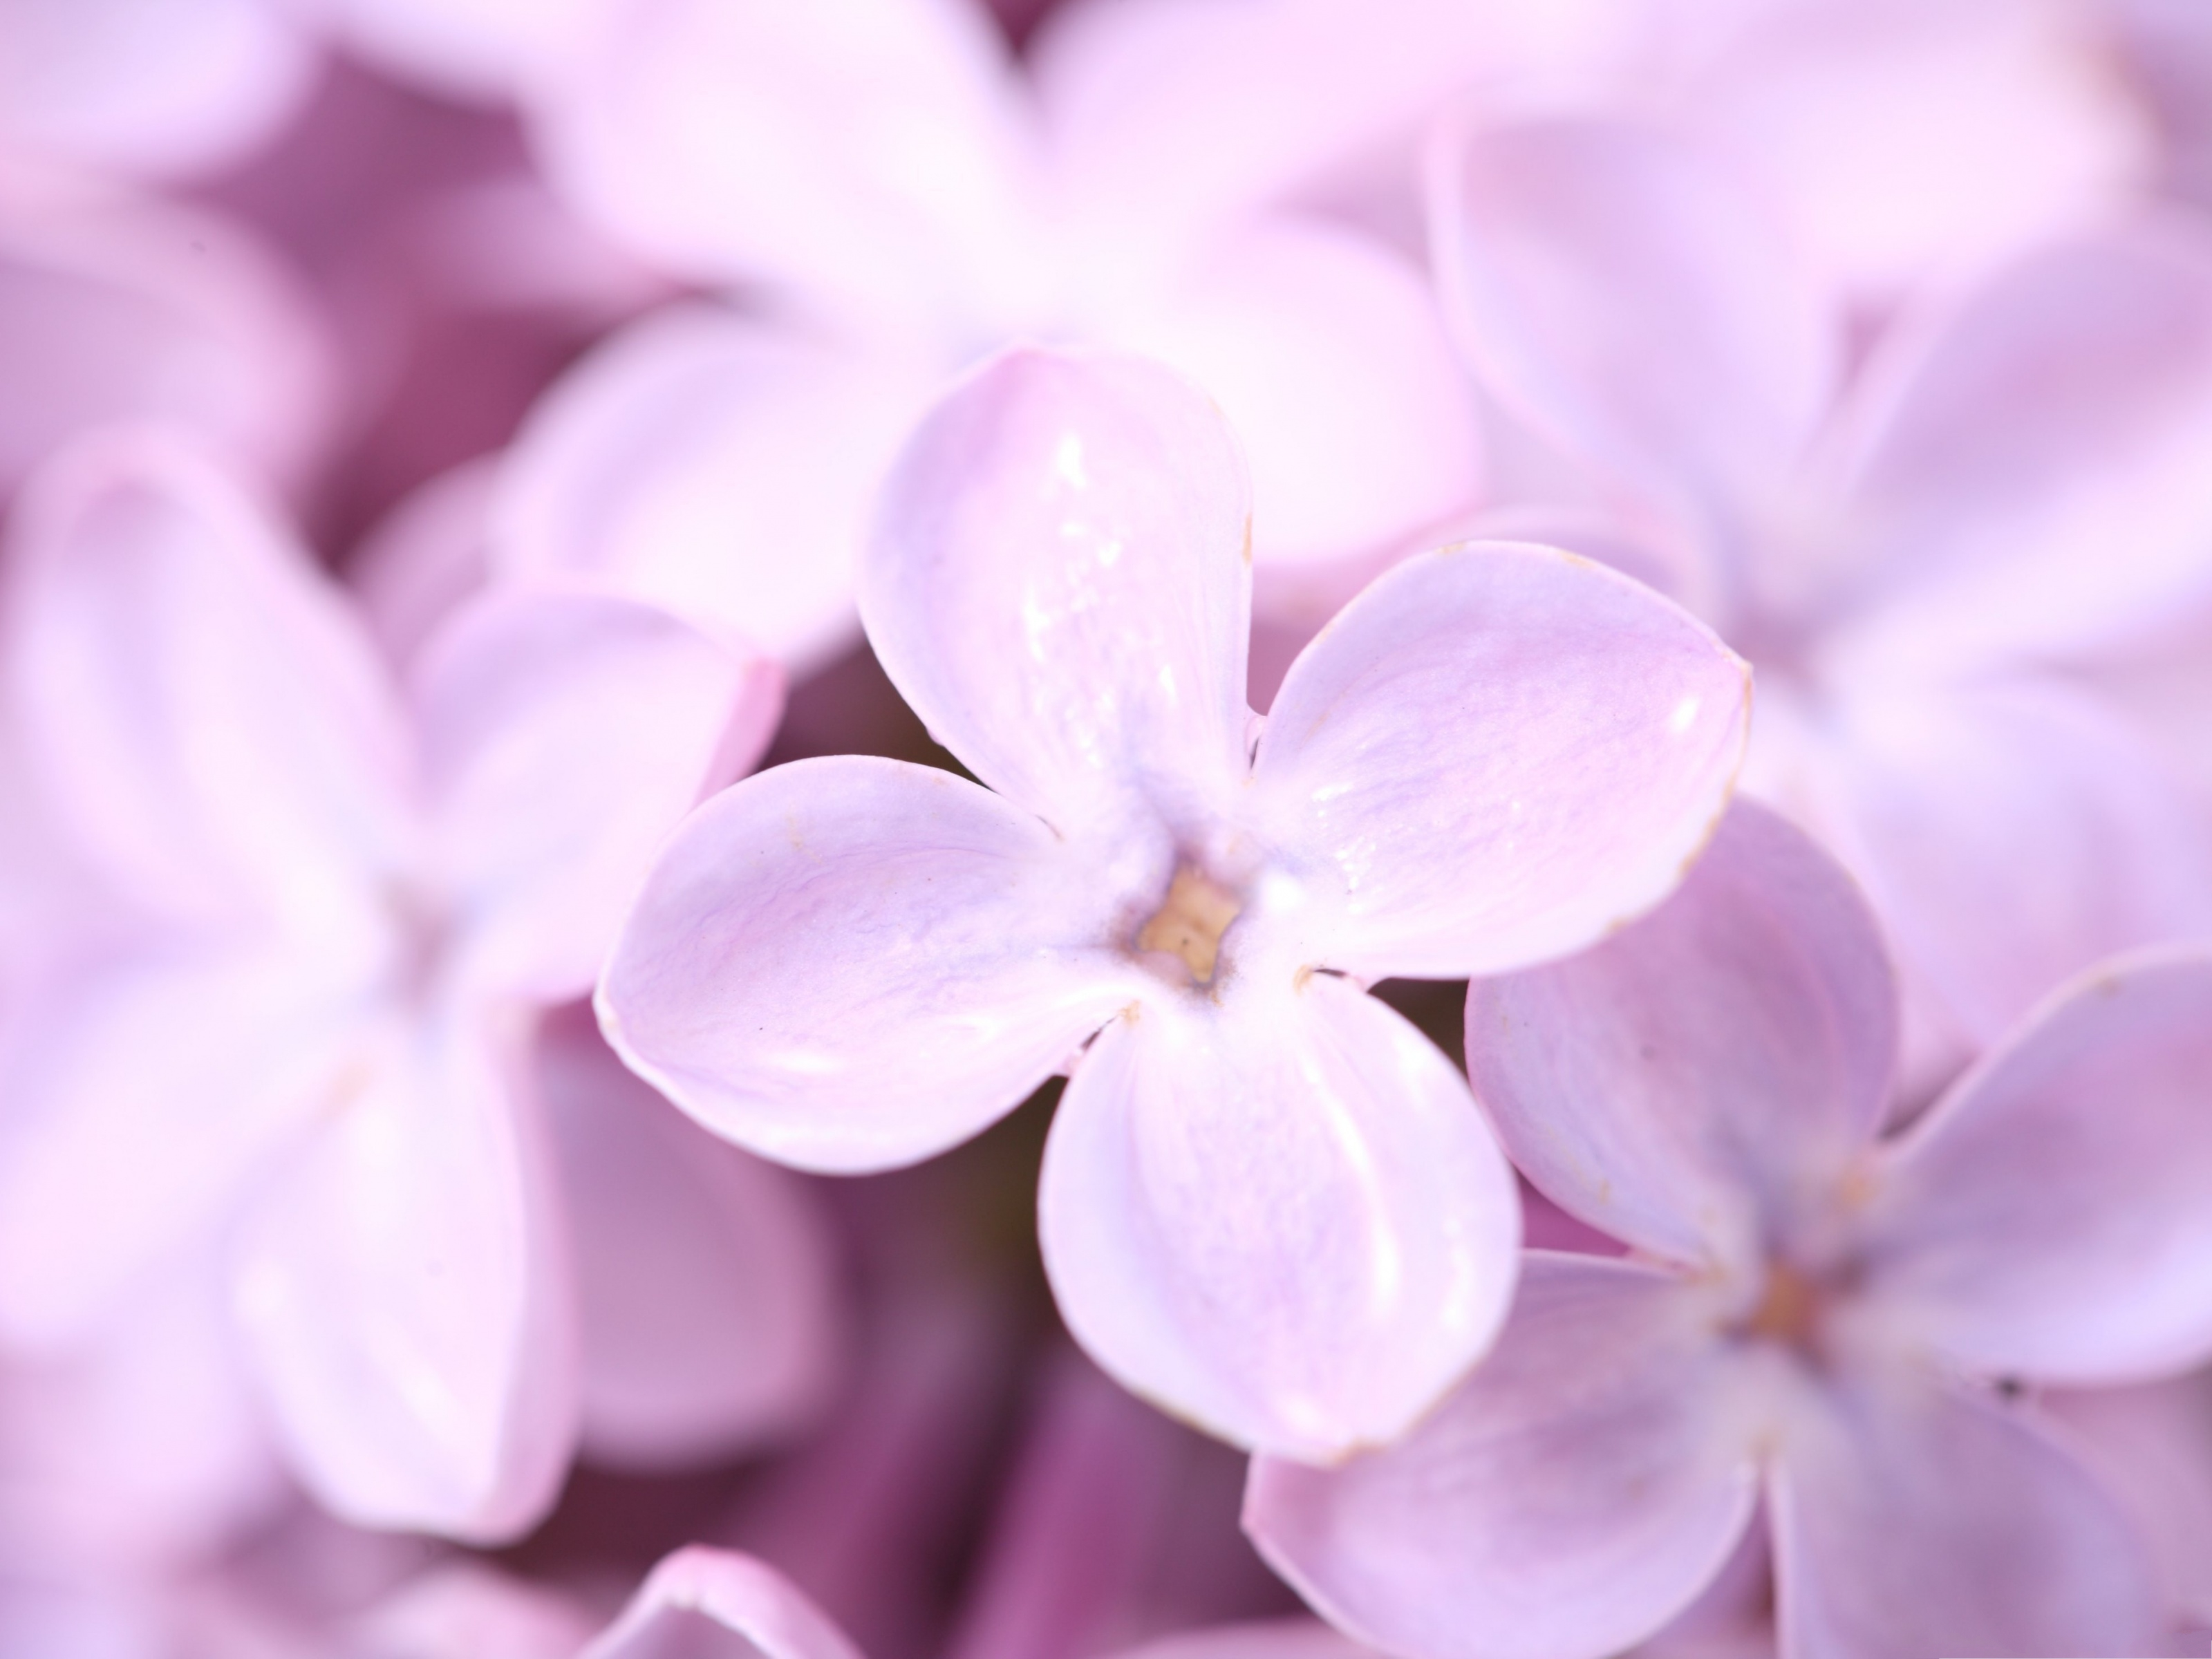 click to free download the wallpaper--Violet Lilac Flowers, Small Pink Flowers in Bloom, Rain Drops on Petals 3200X2400 free wallpaper download